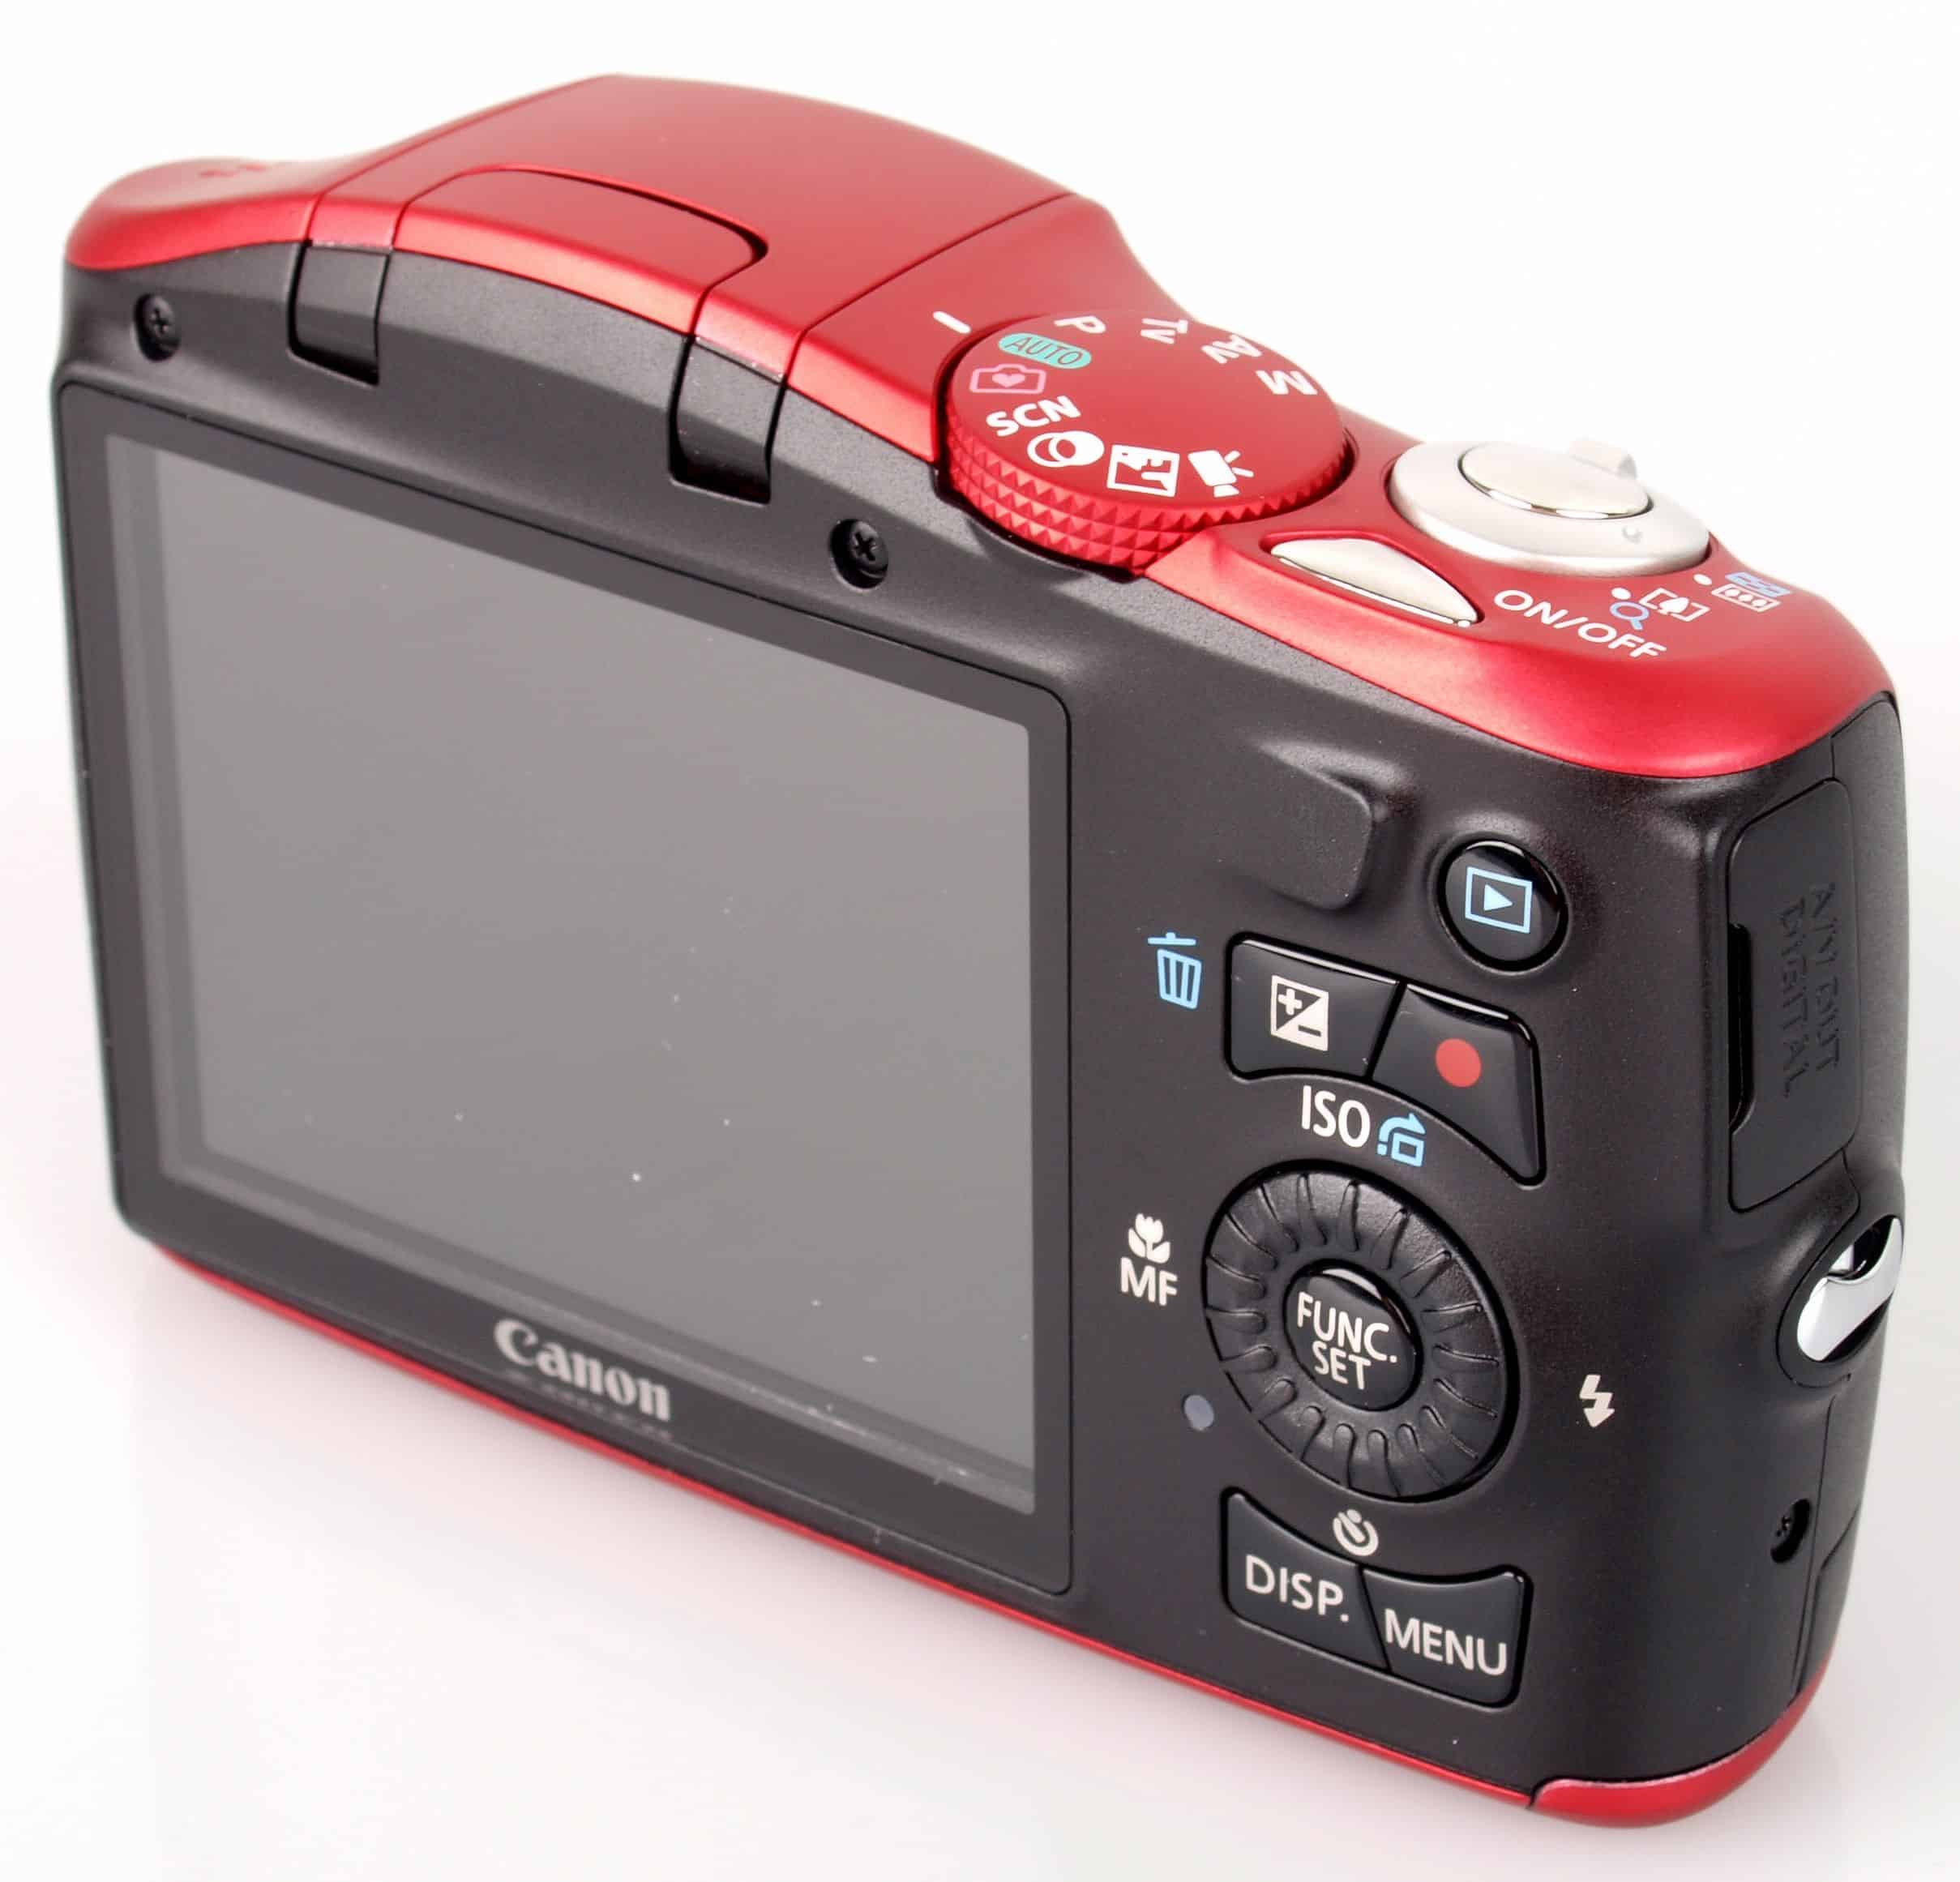 amazon Canon PowerShot SX150 IS reviews Canon PowerShot SX150 IS on amazon newest Canon PowerShot SX150 IS prices of Canon PowerShot SX150 IS Canon PowerShot SX150 IS deals best deals on Canon PowerShot SX150 IS buying a Canon PowerShot SX150 IS lastest Canon PowerShot SX150 IS what is a Canon PowerShot SX150 IS Canon PowerShot SX150 IS at amazon where to buy Canon PowerShot SX150 IS where can i you get a Canon PowerShot SX150 IS online purchase Canon PowerShot SX150 IS Canon PowerShot SX150 IS sale off Canon PowerShot SX150 IS discount cheapest Canon PowerShot SX150 IS  Canon PowerShot SX150 IS for sale canon powershot sx150 is argos canon powershot sx150 is amazon canon powershot sx150 is pros and cons canon powershot sx150 is accessories canon powershot sx150 is lens adapter canon powershot sx150 is price in south africa canon powershot sx150 is ac adapter canon powershot sx150 is price and specifications what is the difference between canon powershot sx130 and sx150 best batteries for canon powershot sx150 is battery for canon powershot sx150 is buy canon powershot sx150 is bán canon powershot sx150 is bedienungsanleitung canon powershot sx150 is camera bag for canon powershot sx150 is canon powershot sx150 is battery problems canon powershot sx150 is best buy canon powershot sx150 is battery life canon powershot sx150 is 14.1 mp digital camera - black review camera canon powershot sx150 is camera digital canon powershot sx150 is có nên mua canon powershot sx150 is camara canon powershot sx150 is cách sử dụng máy ảnh canon powershot sx150 is camara canon powershot sx150 is caracteristicas canon powershot sx50 hs vs canon powershot sx150 is como usar camara canon powershot sx150 is camera semi profissional canon powershot sx150 is driver canon powershot sx150 is hướng dẫn sử dụng canon powershot sx150 is harga dan spesifikasi canon powershot sx150 is kelebihan dan kekurangan canon powershot sx150 is harga kamera digital canon powershot sx150 is canon powershot sx